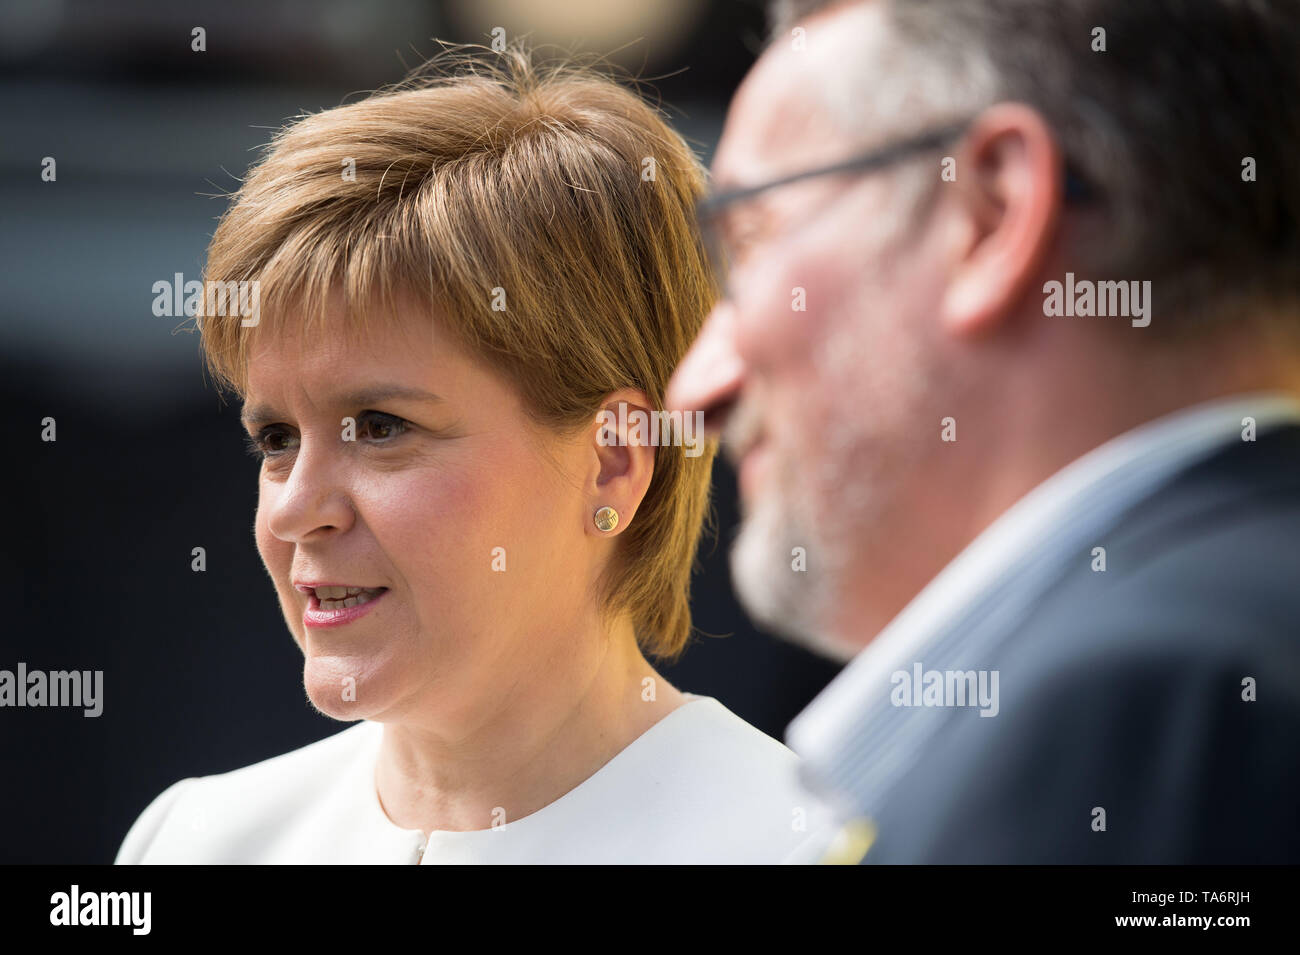 Glasgow, UK. 17 May 2019. Nicola Sturgeon, First Minister and leader of the Scottish National Party, launches the SNP's European Election Manifesto in the Barras in Glasgow's east end today.  The SNP want to stop Brexit and keep ties with our European neighbours and trading partners. Stock Photo